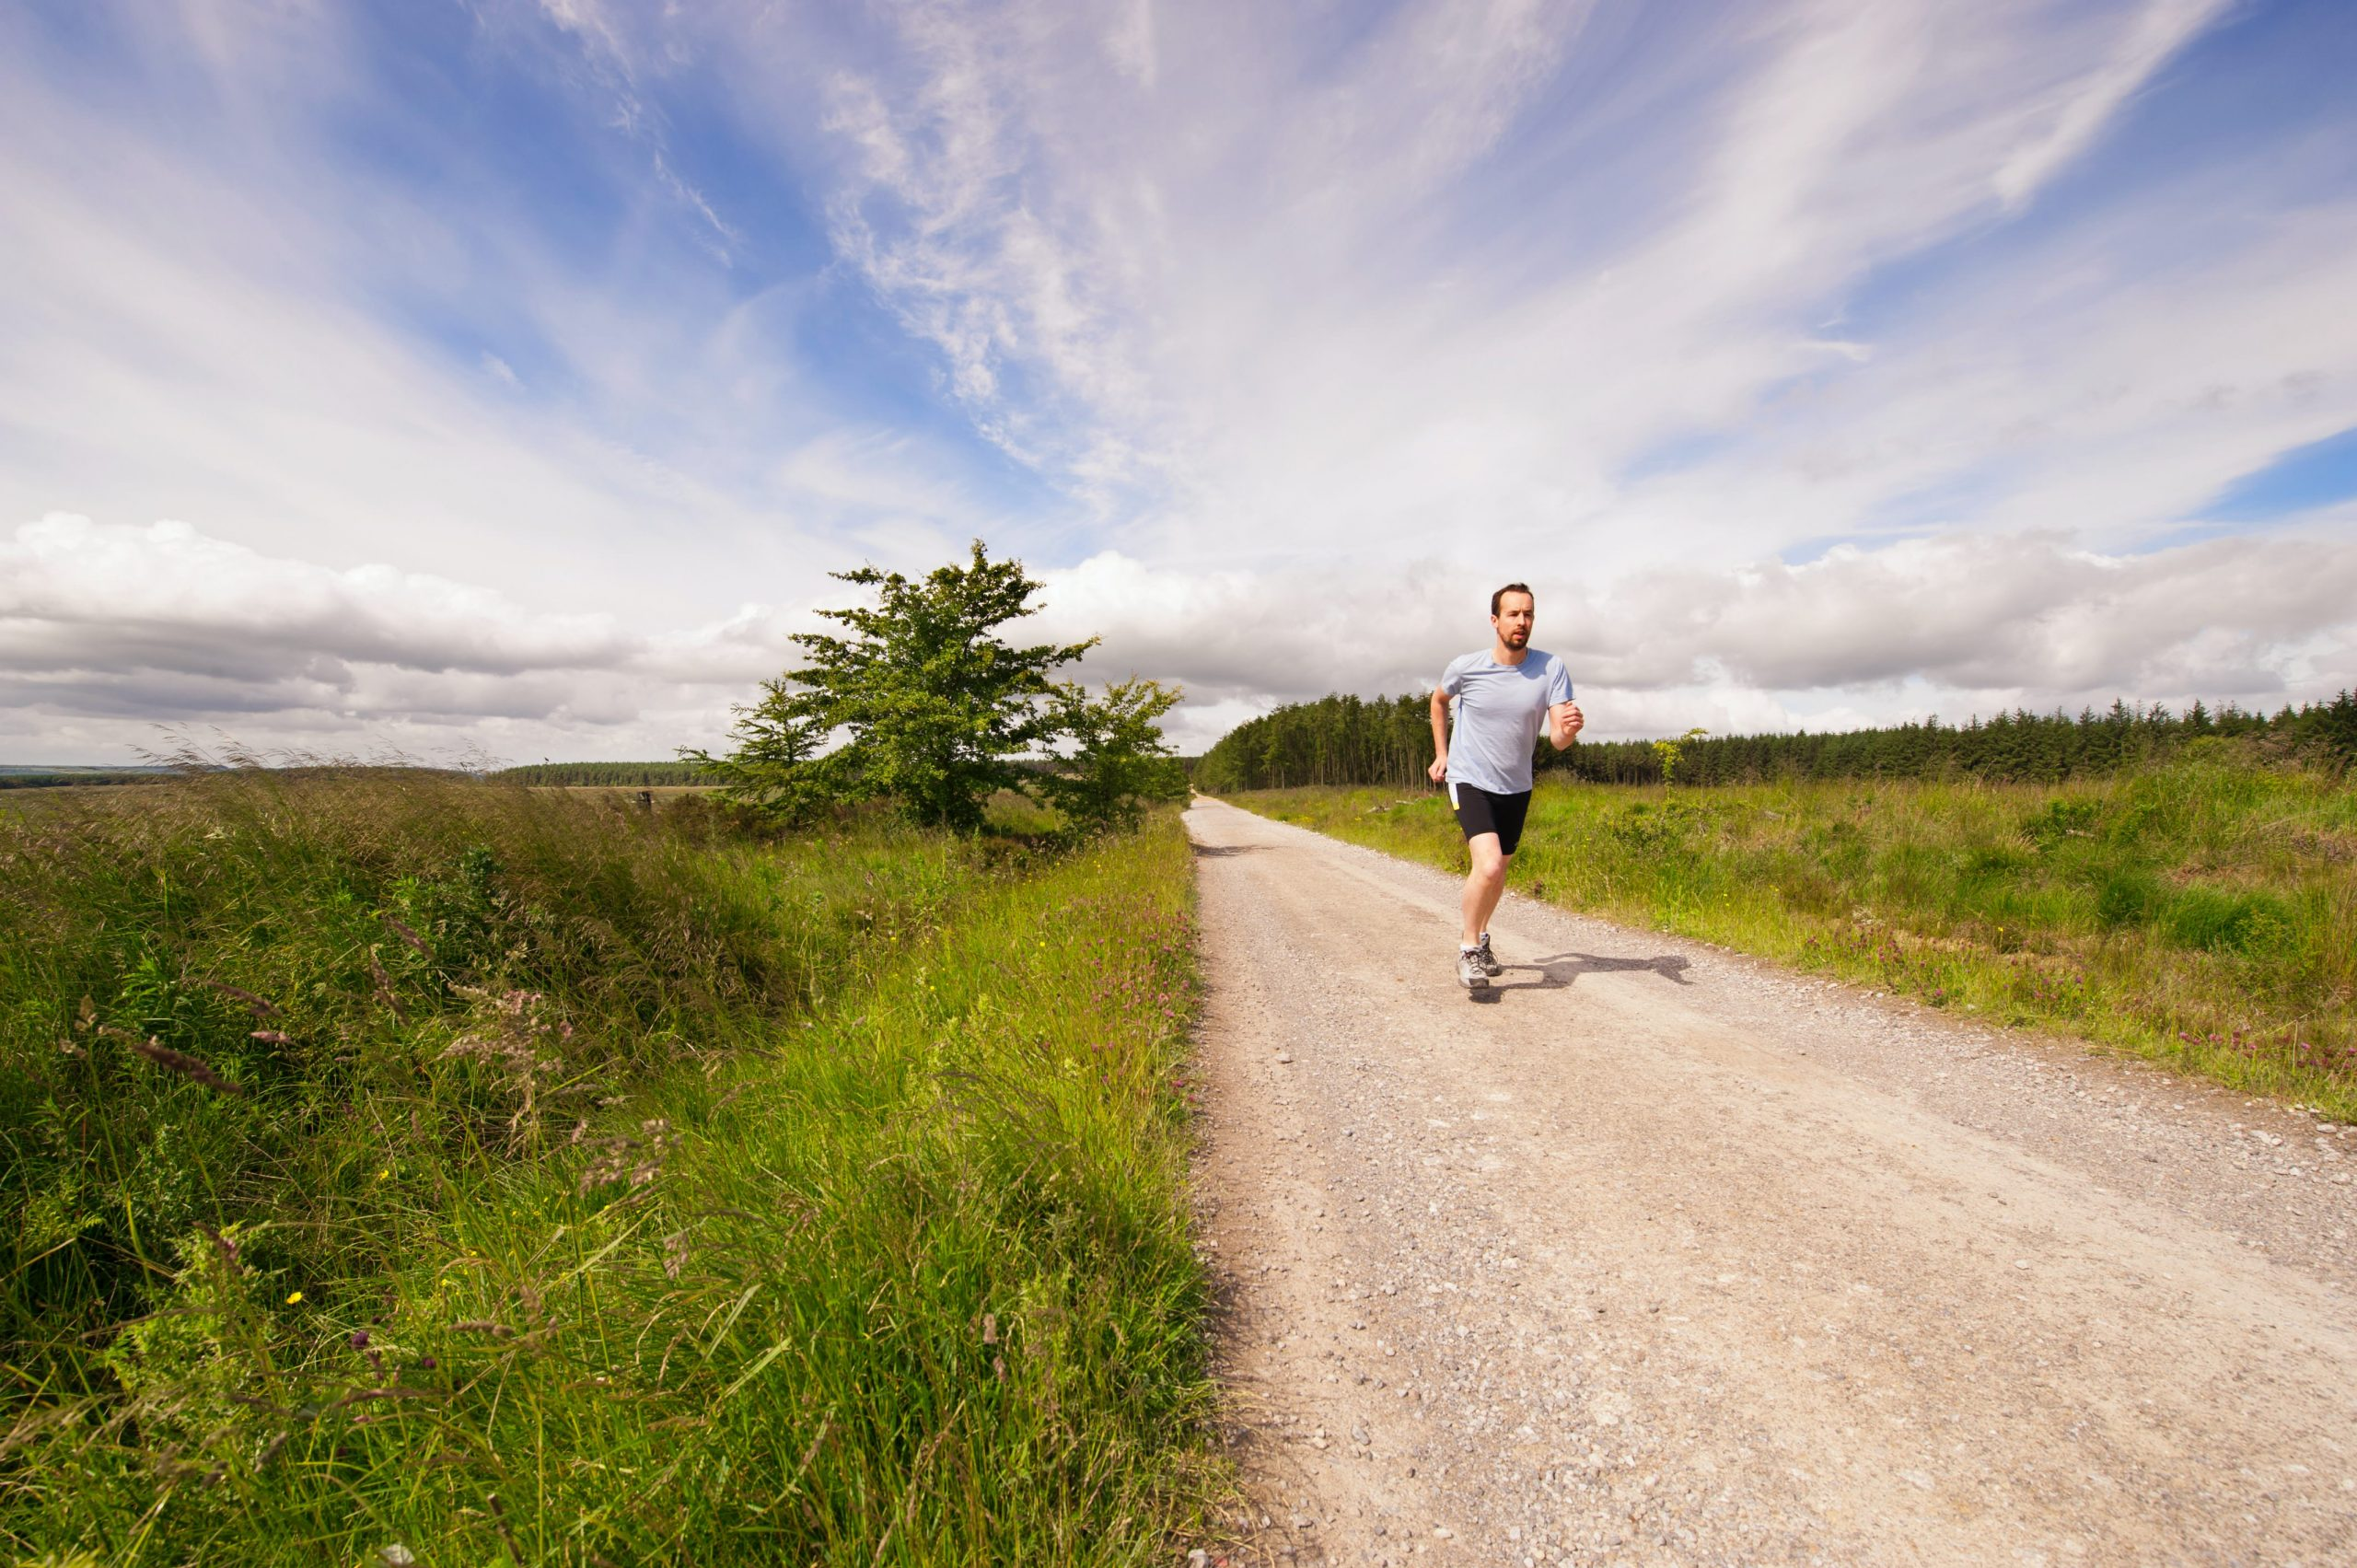 Runner's Knee and Why It Won't Go Away